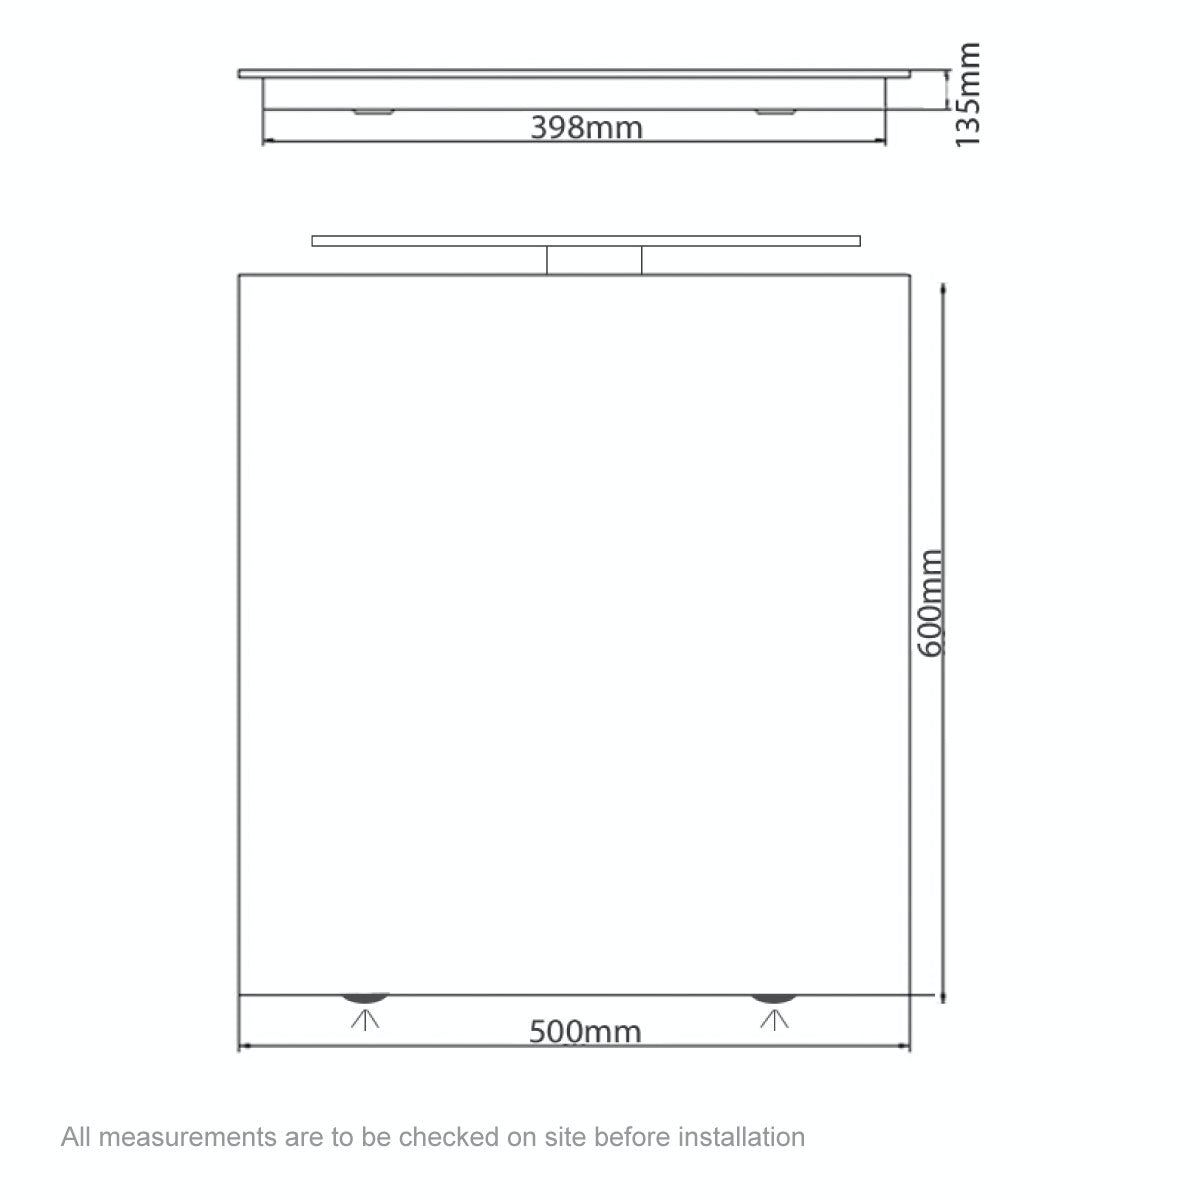 Dimensions for Mode Neveah LED over and under lit mirror cabinet